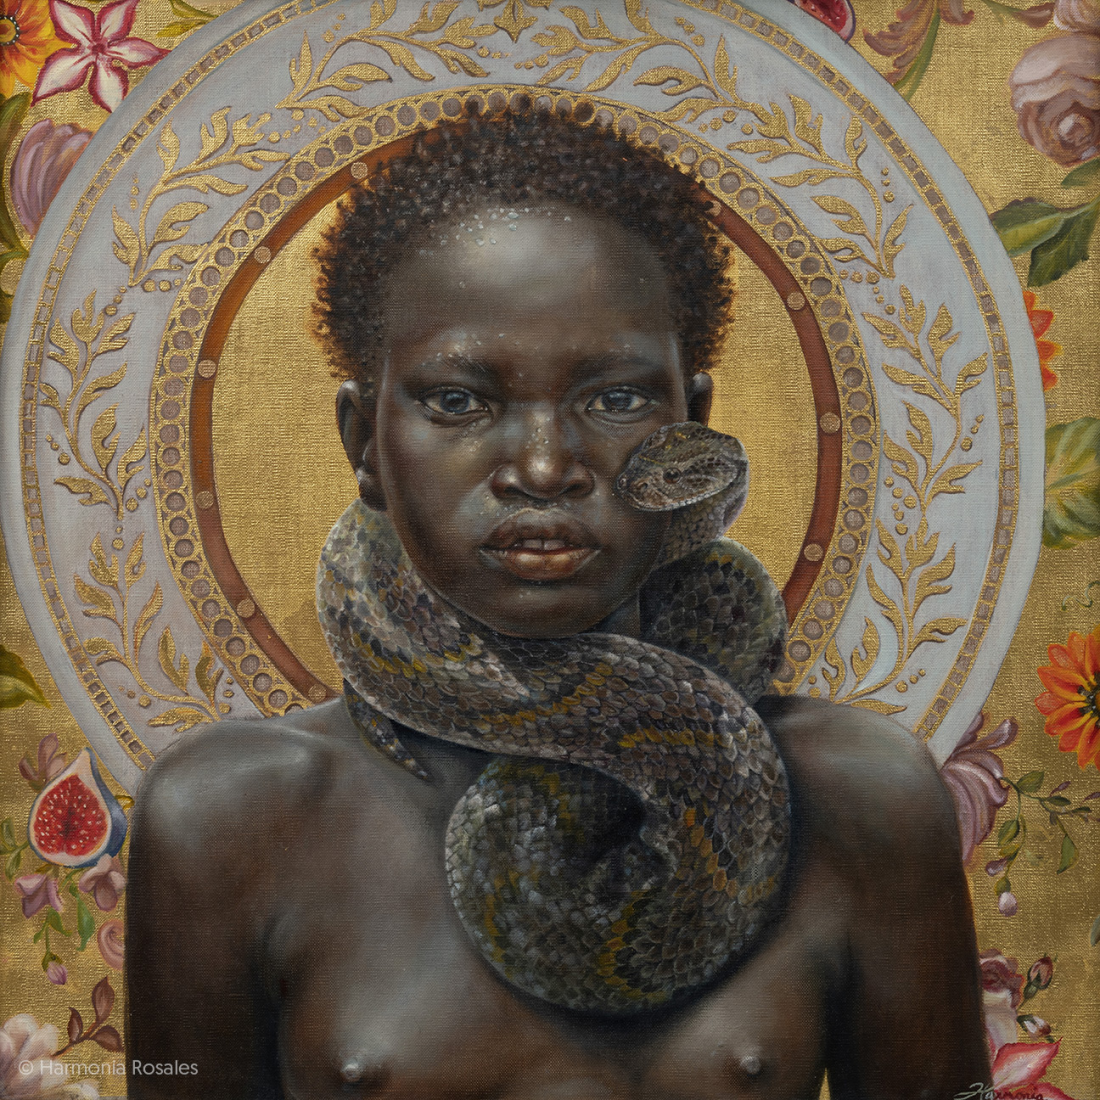 """Summer,"" (2018), oil on linen and gold leaf, 24 x 24 inches. All images © Harmonia Rosales, shared with permission"